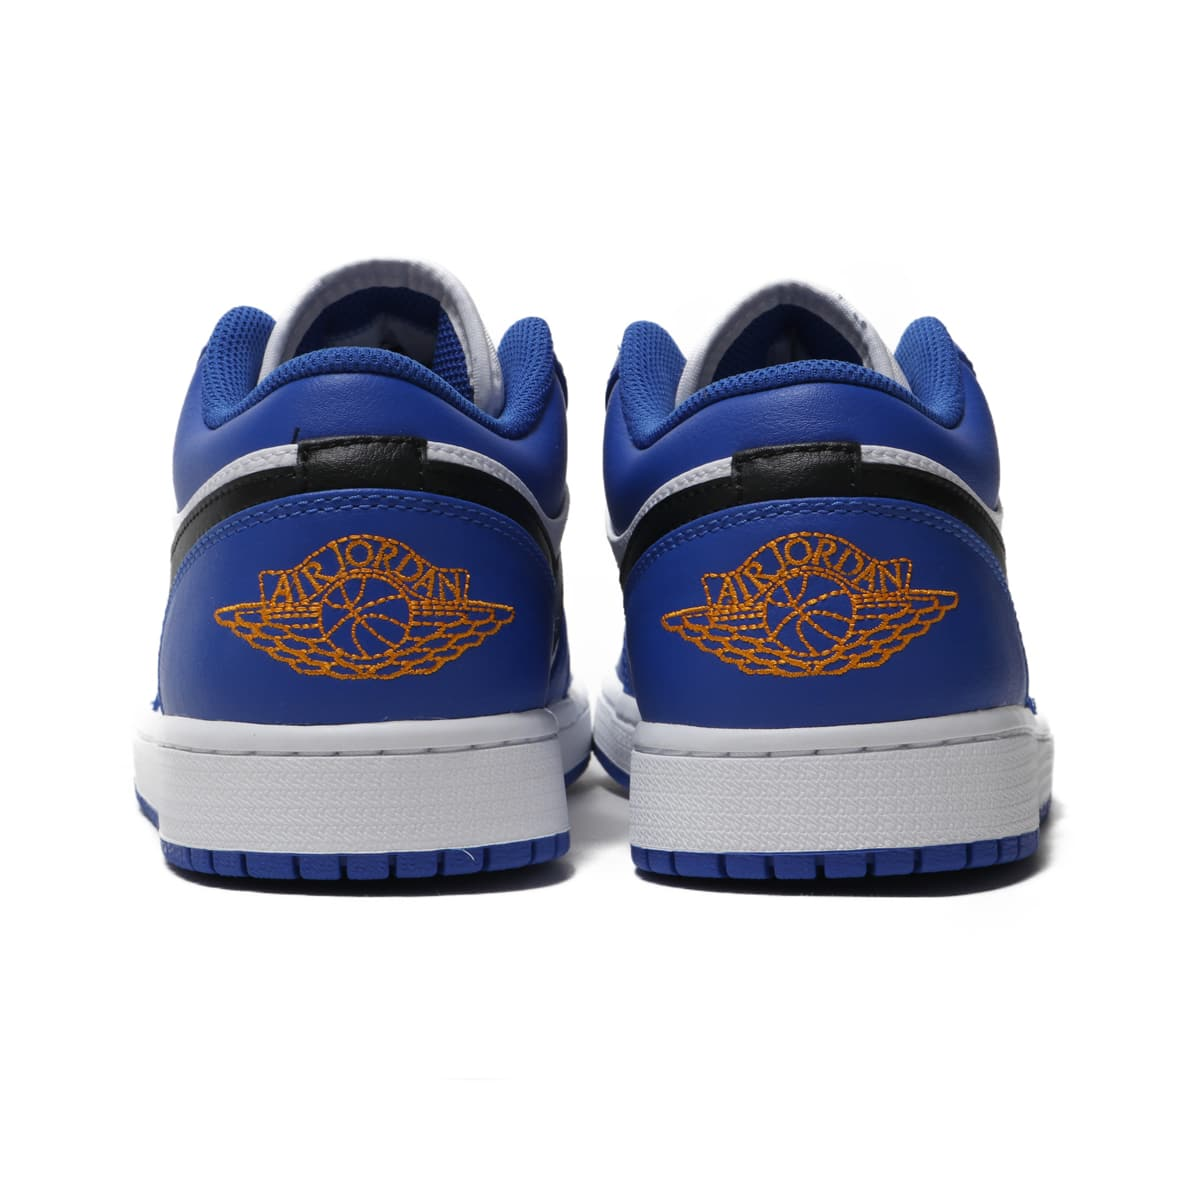 91d8c63b0d68cb NIKE AIR JORDAN 1 LOW HYPER ROYAL ORANGE PEEL-WHITE-BLACK 18FA-I